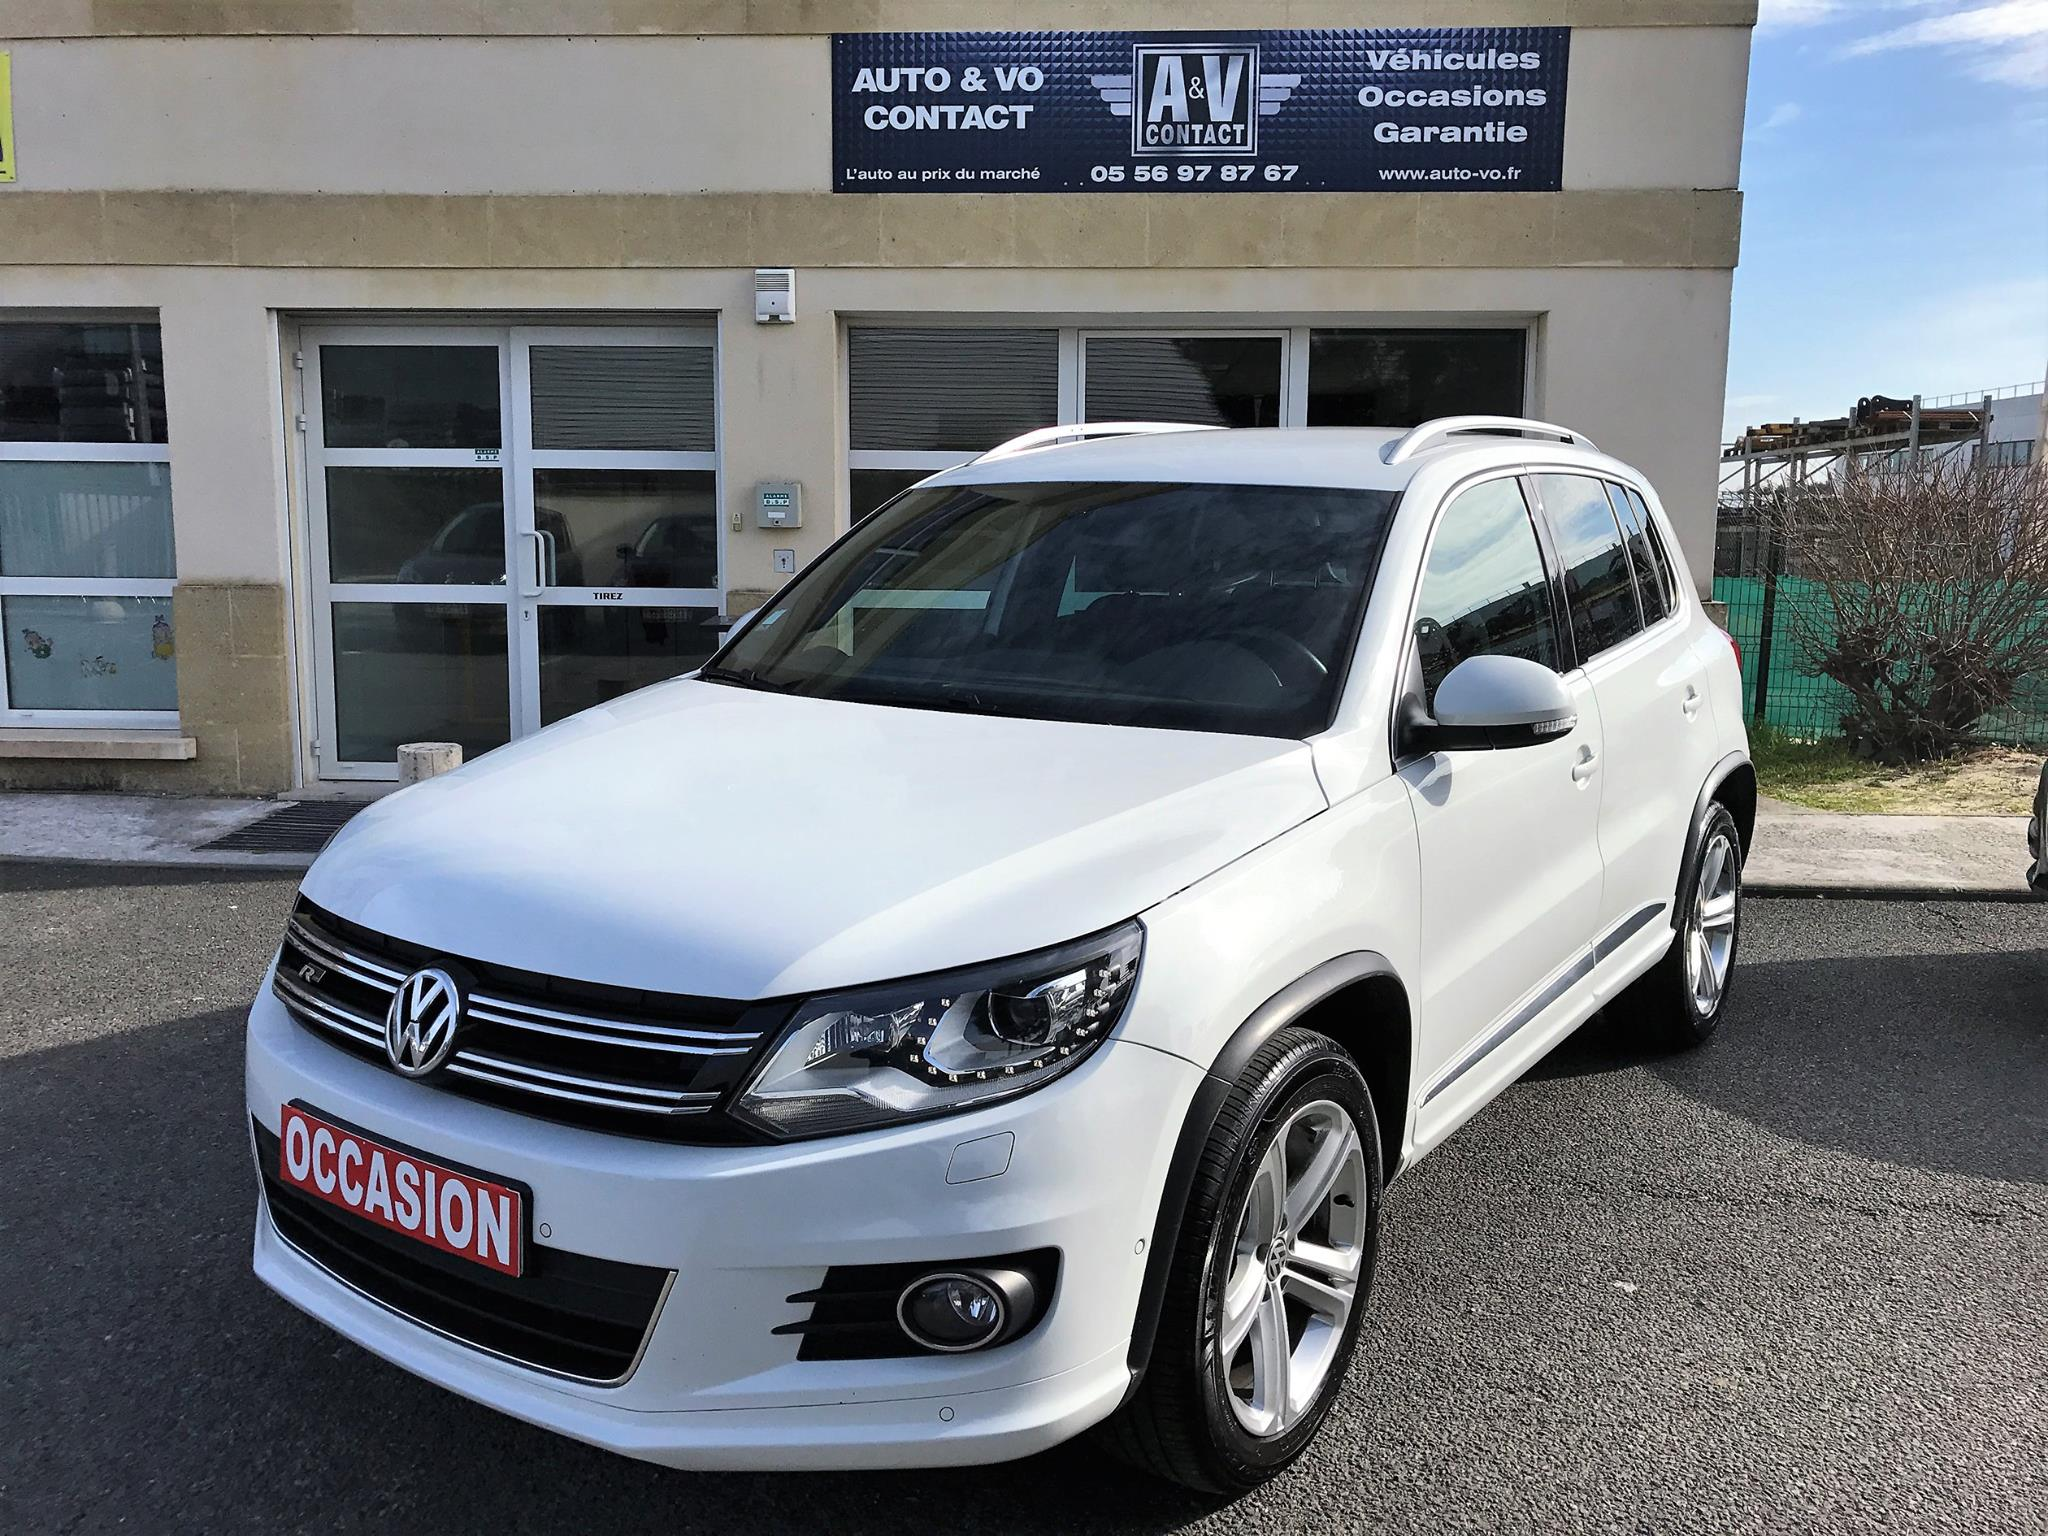 volkswagen tiguan 2 0 tdi 140 r line du 127 500 kms vendu sarl auto vo contact. Black Bedroom Furniture Sets. Home Design Ideas